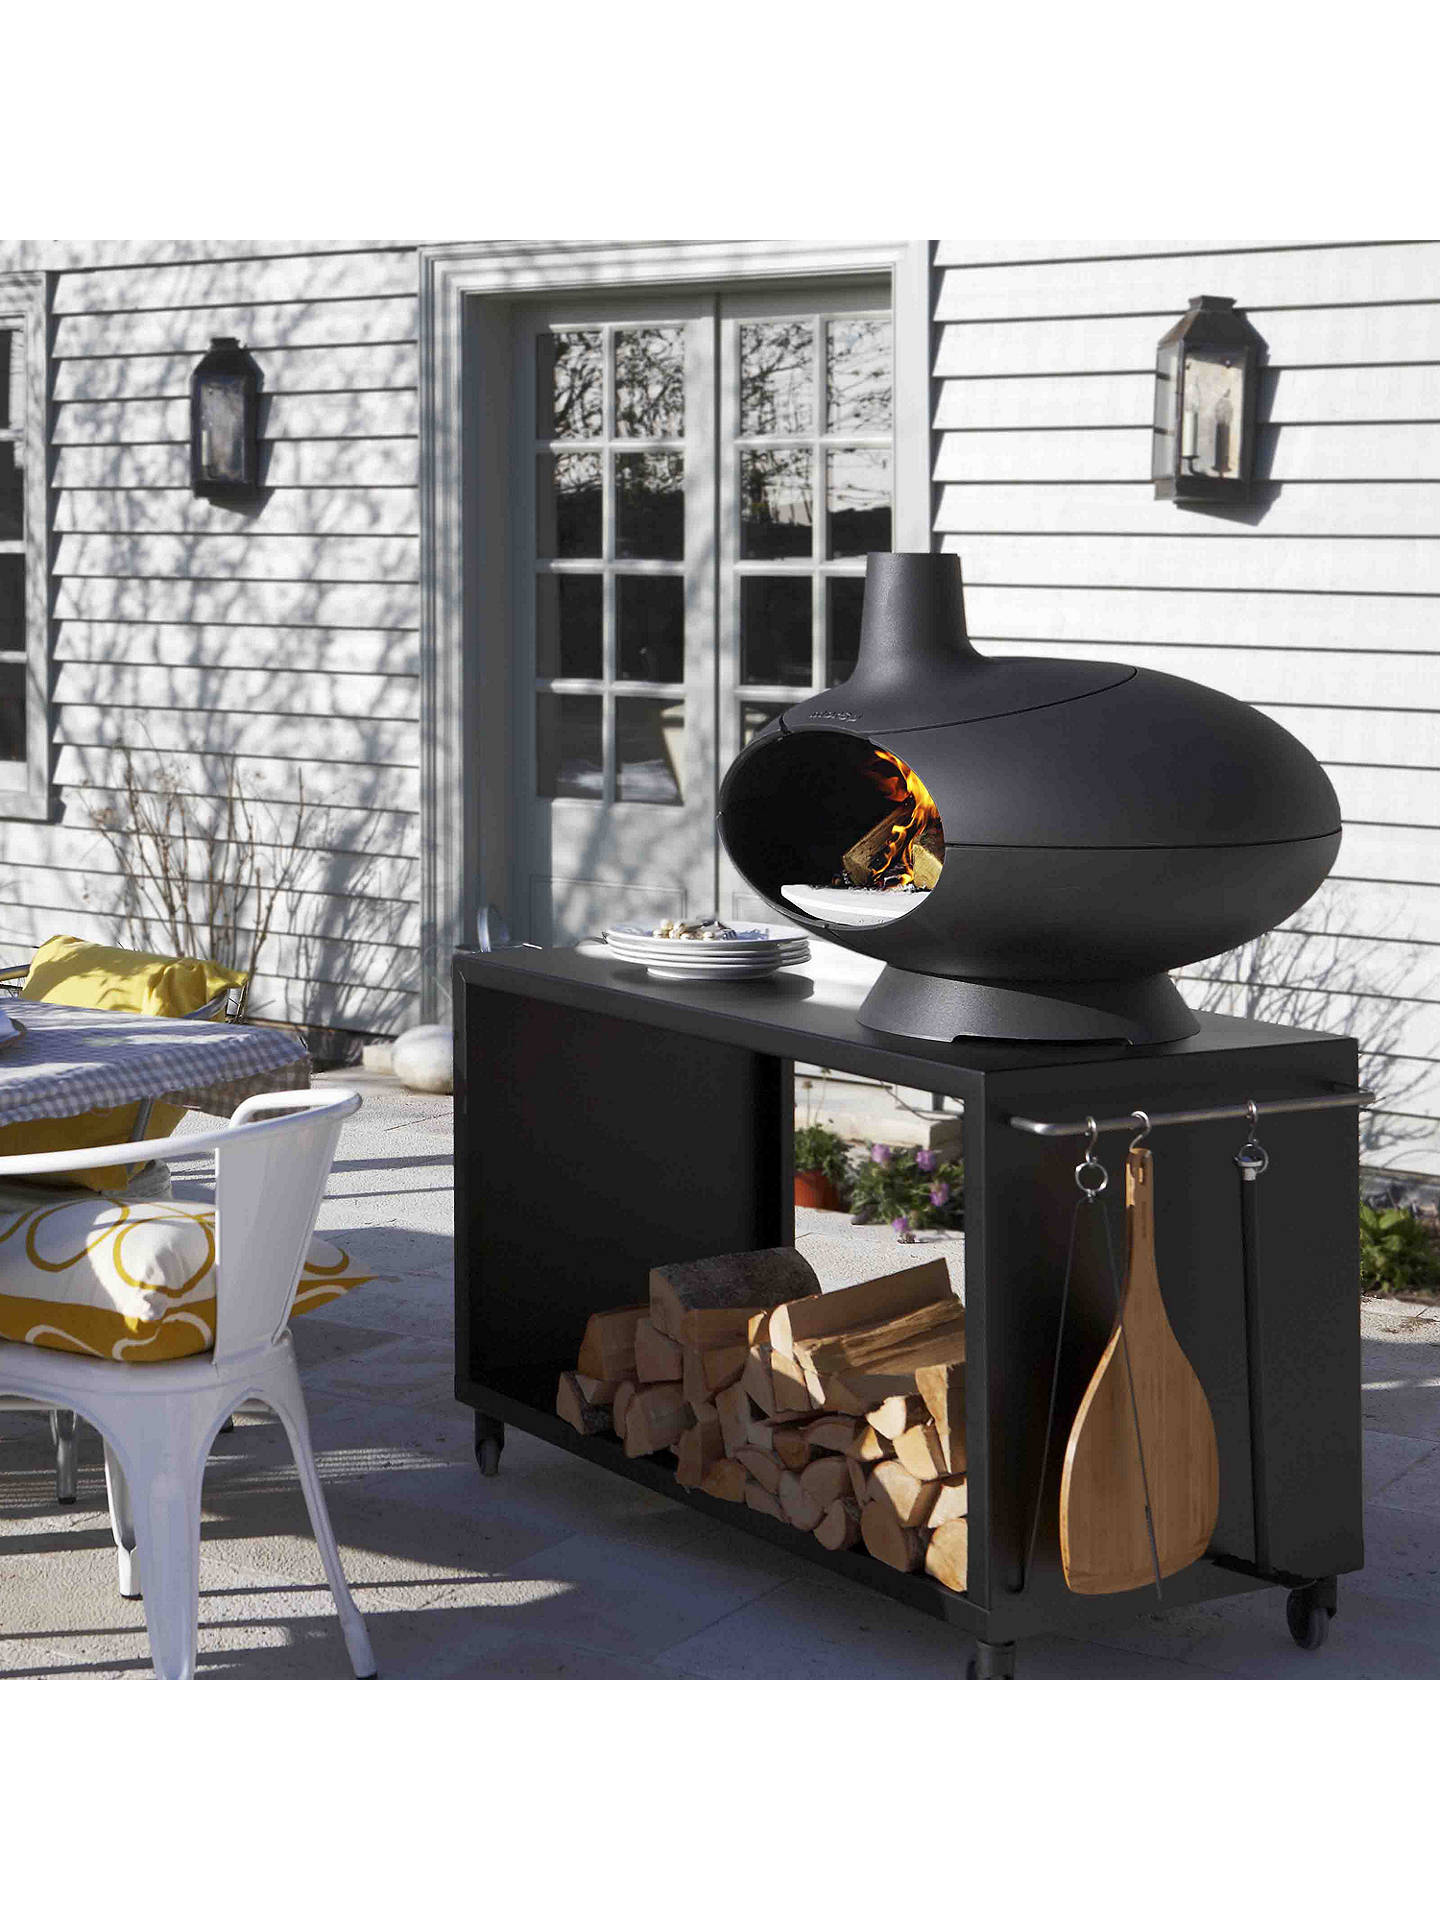 BuyMorsø Forno Outdoor Oven Online at johnlewis.com